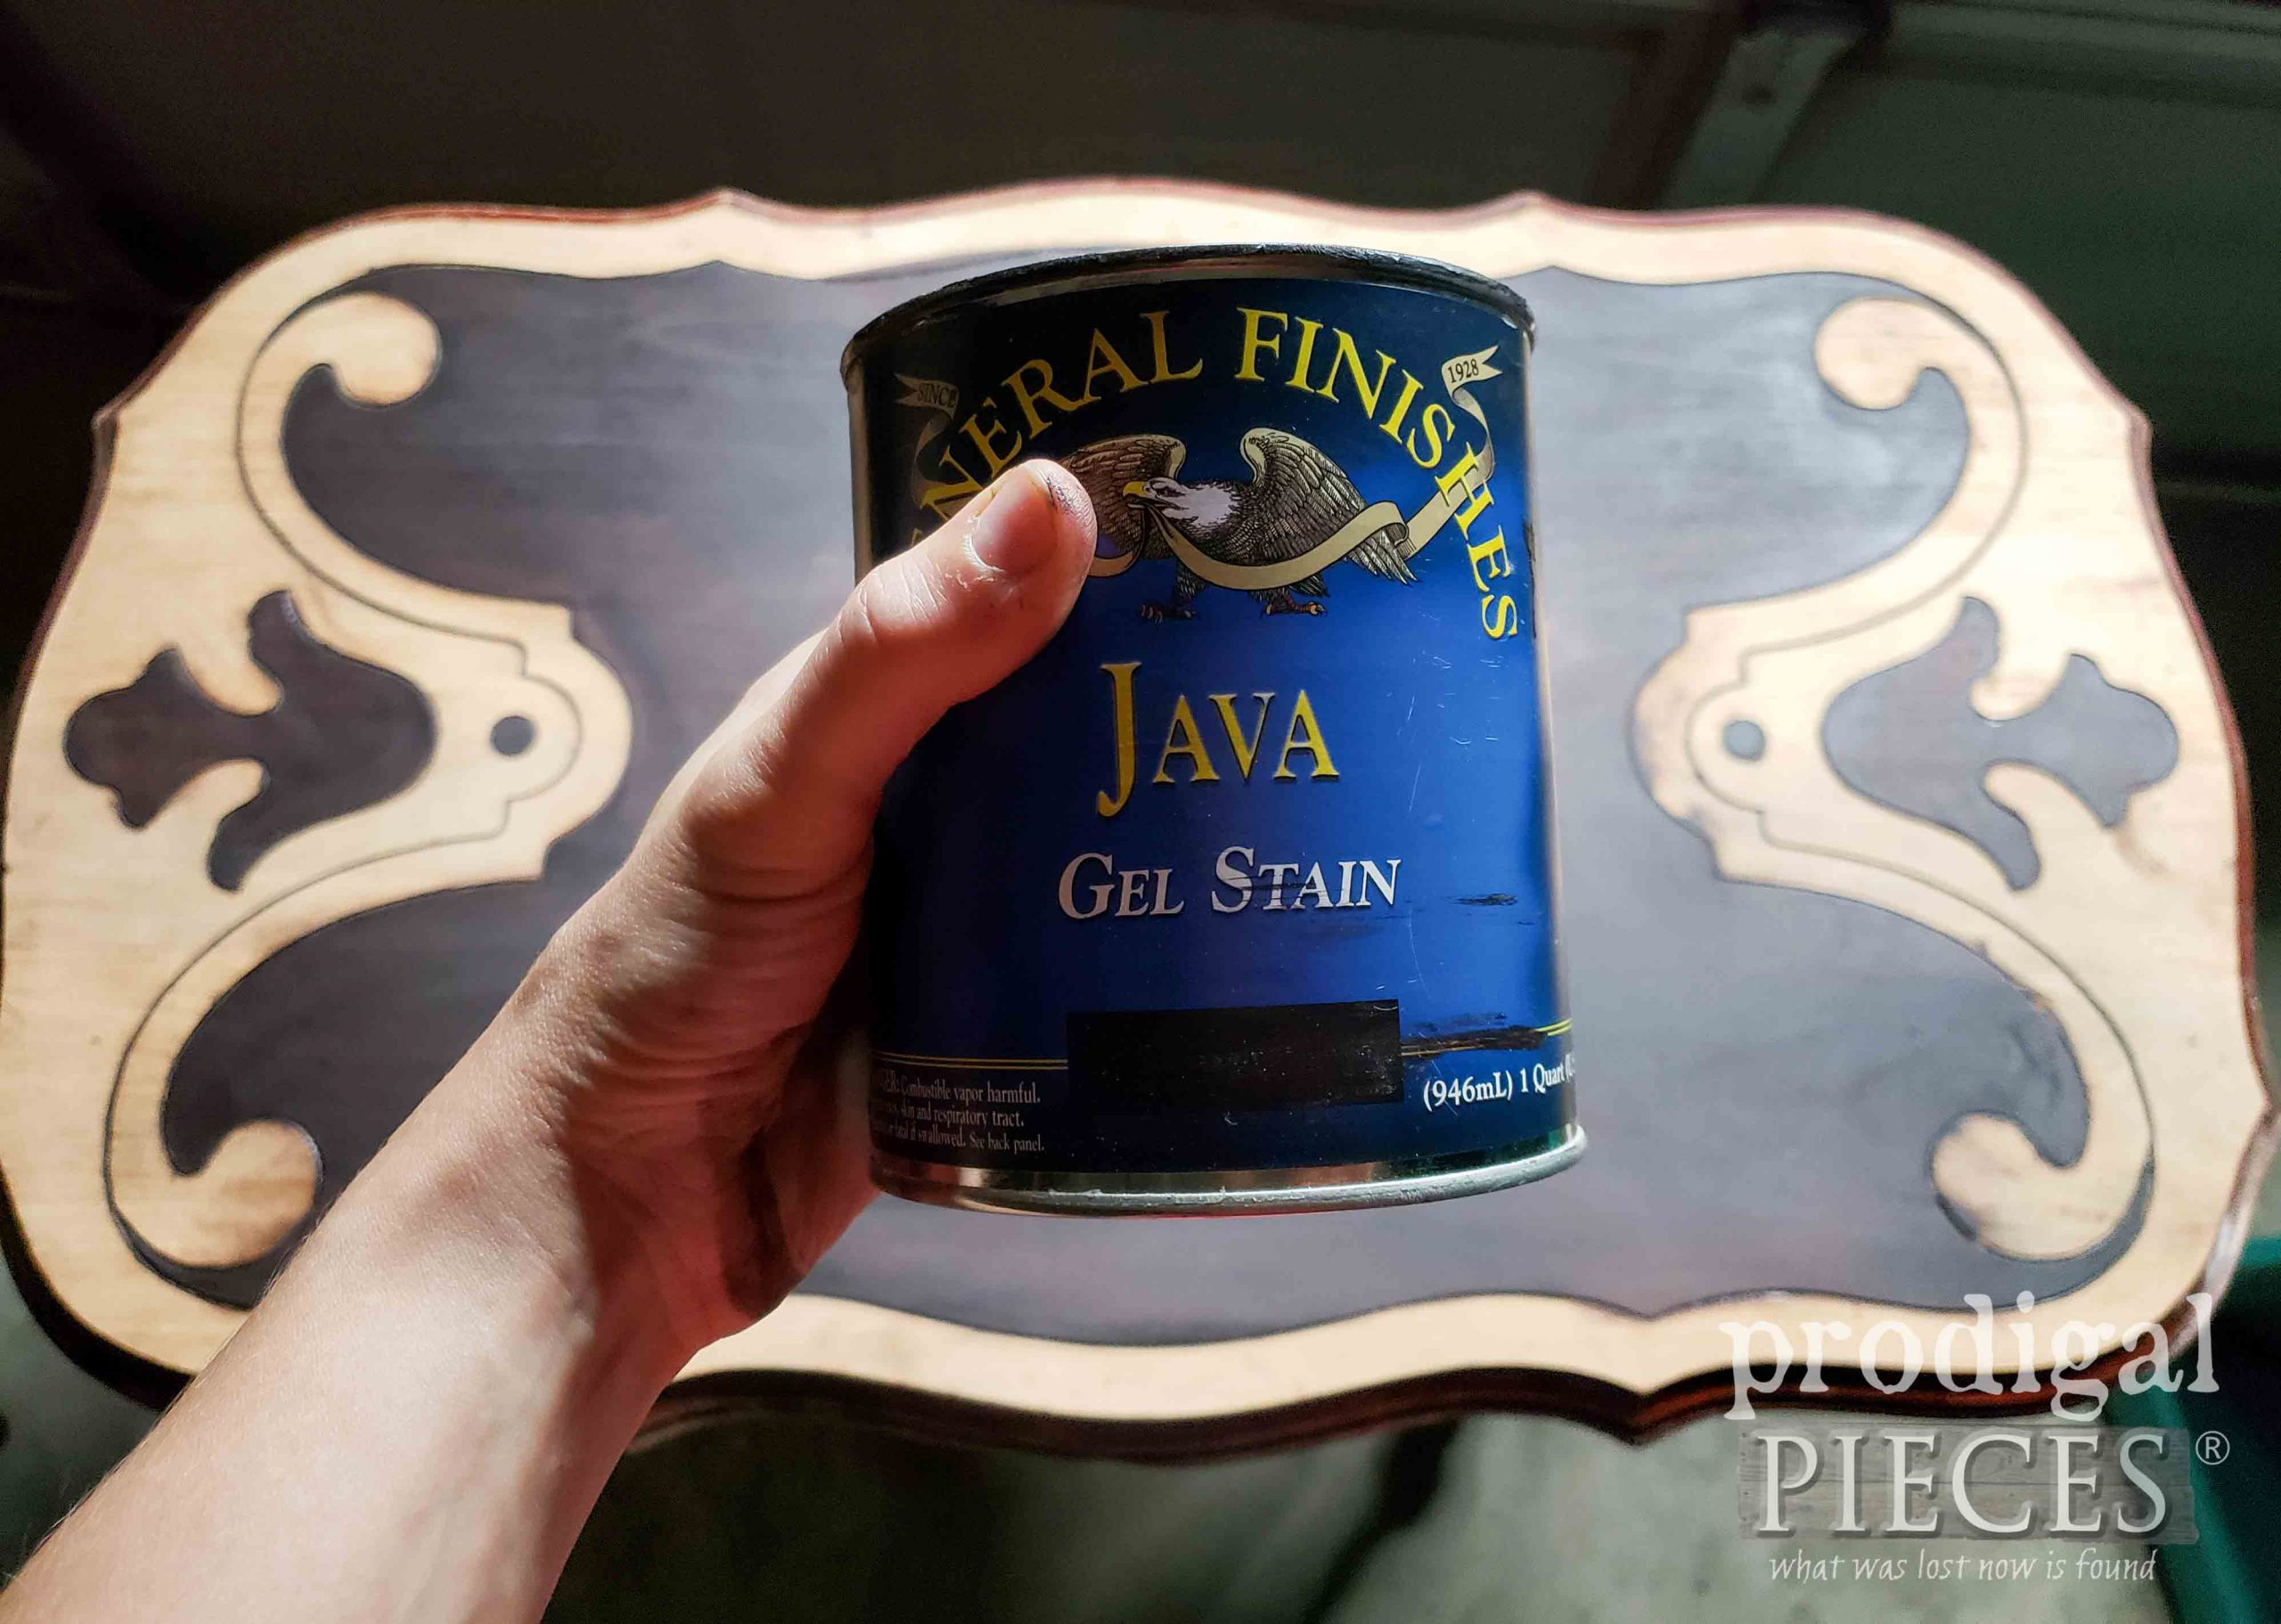 Java Gel Stain for Ornate Antique Table Top | prodigalpieces.com